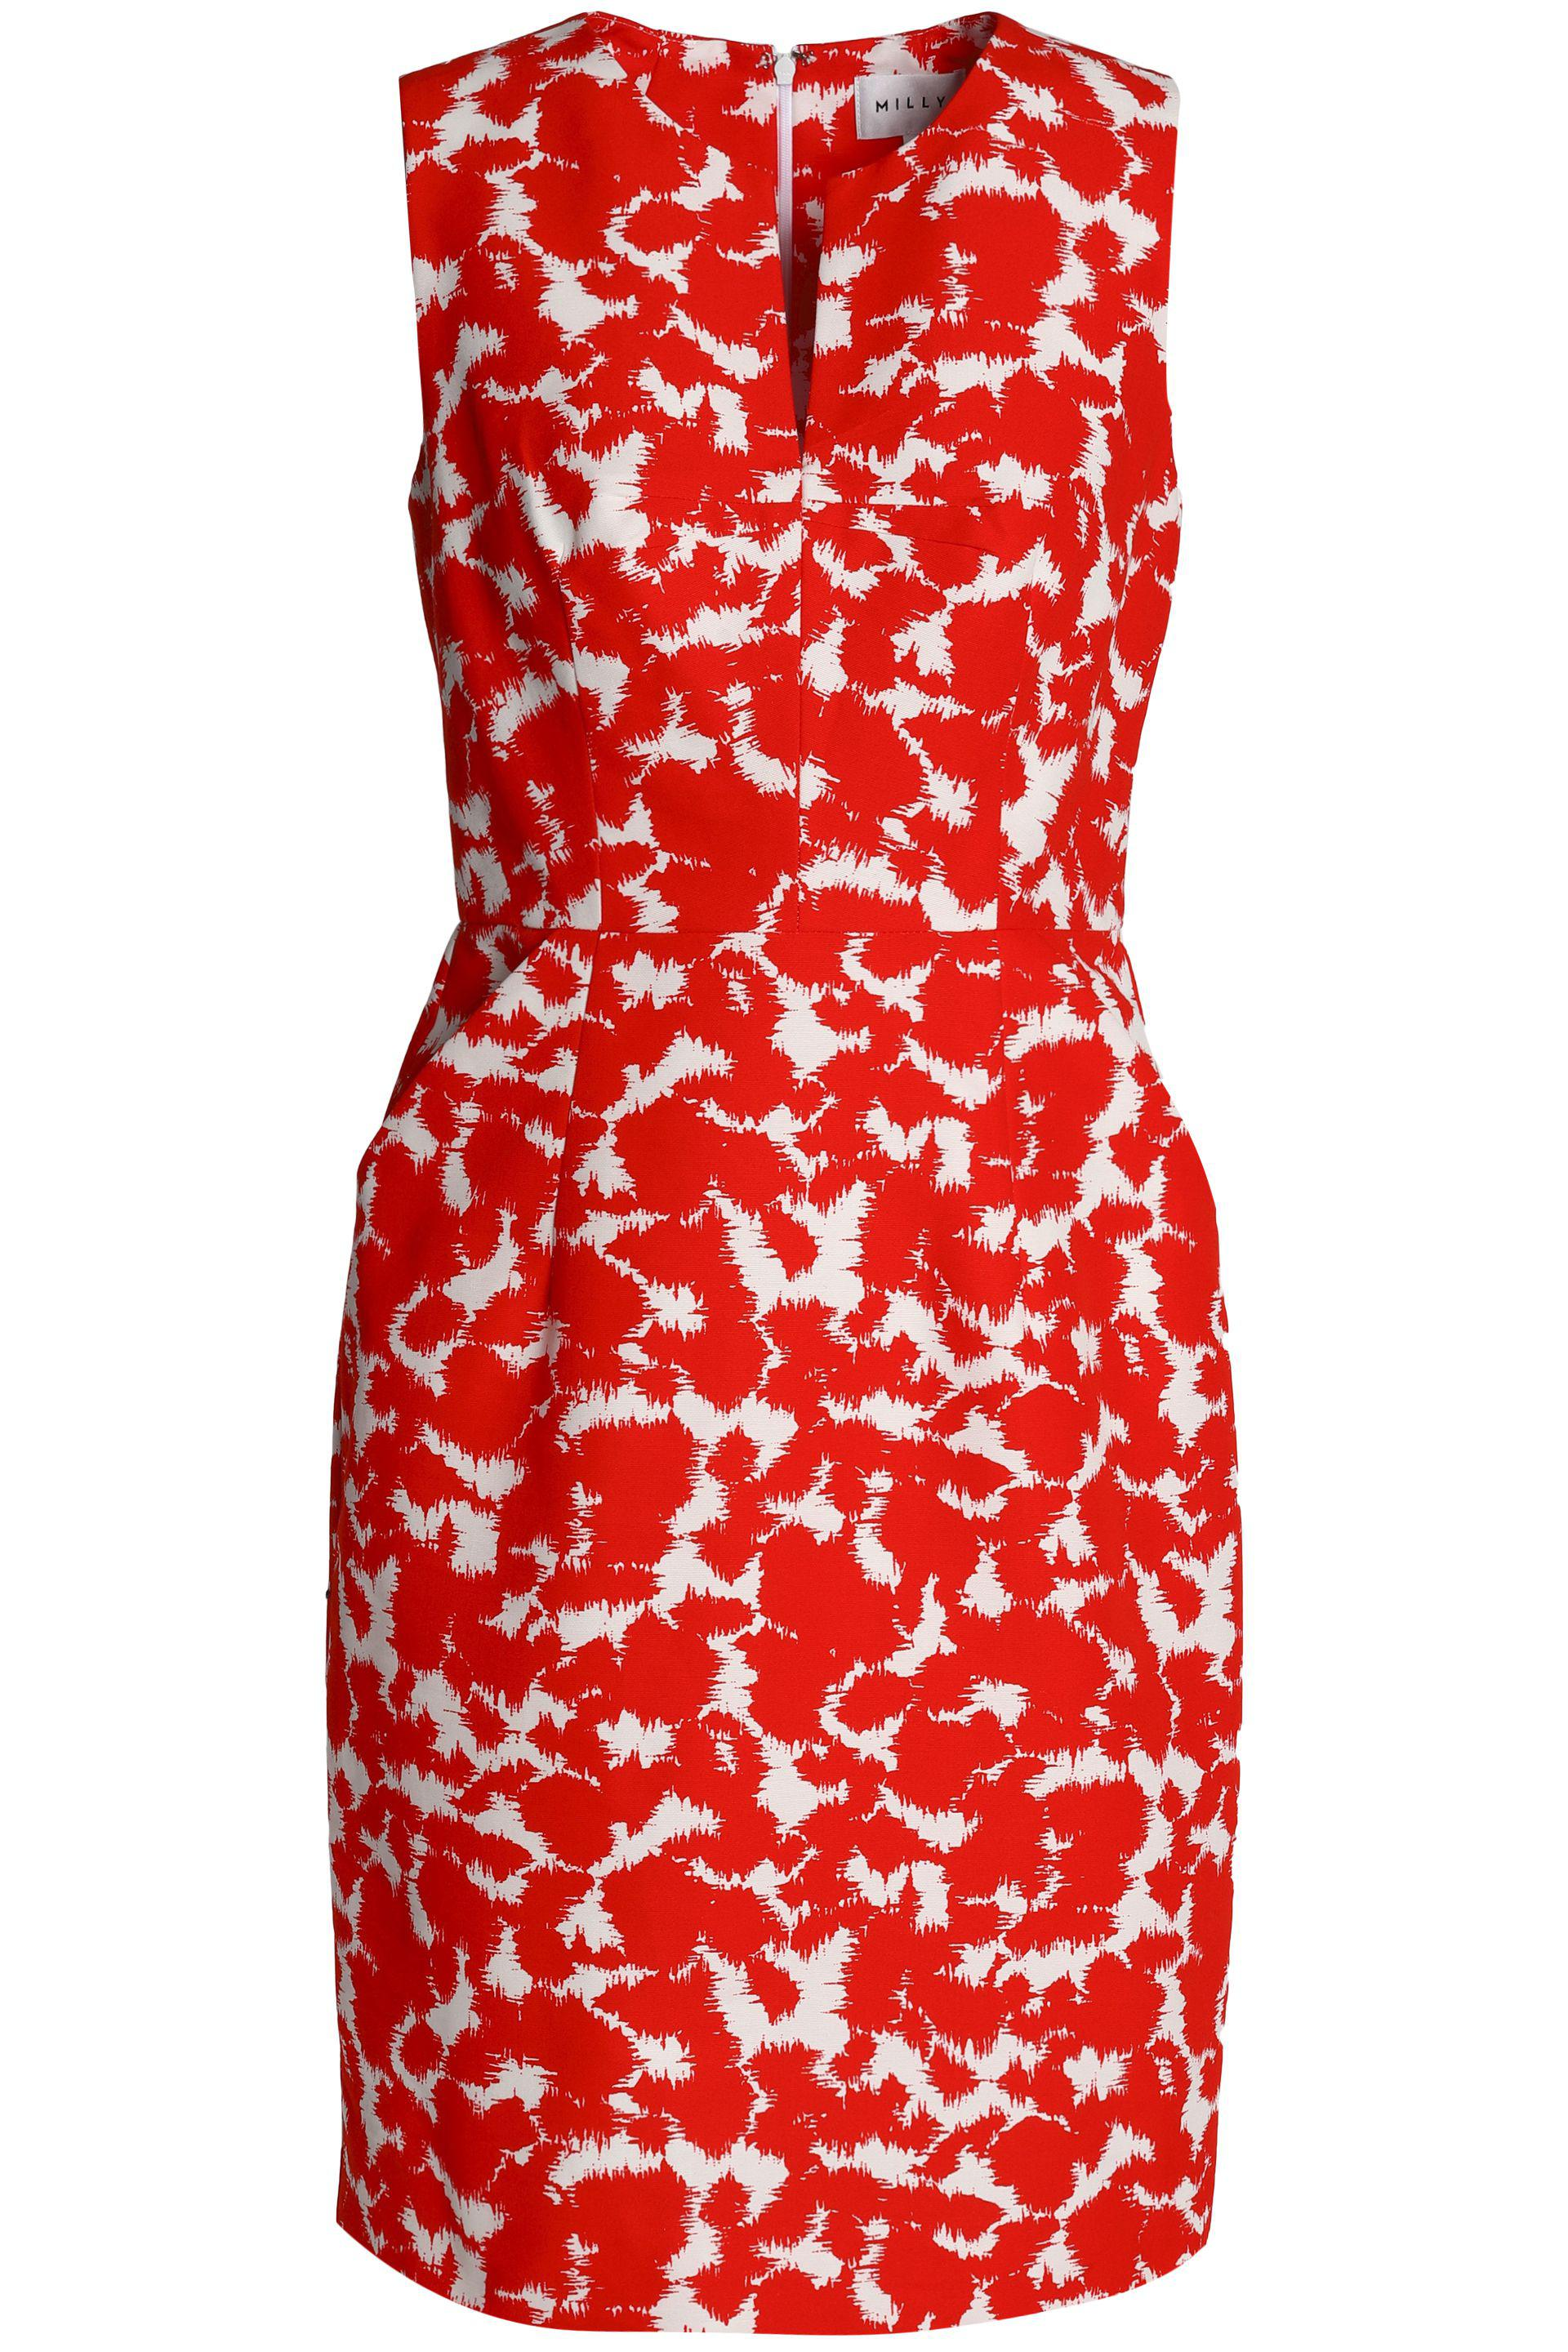 Fast Delivery Online Outlet Shop For Milly Woman Printed Cotton-faille Mini Dress Red Size 8 Milly Fast Delivery Cheap Online 03sCqh